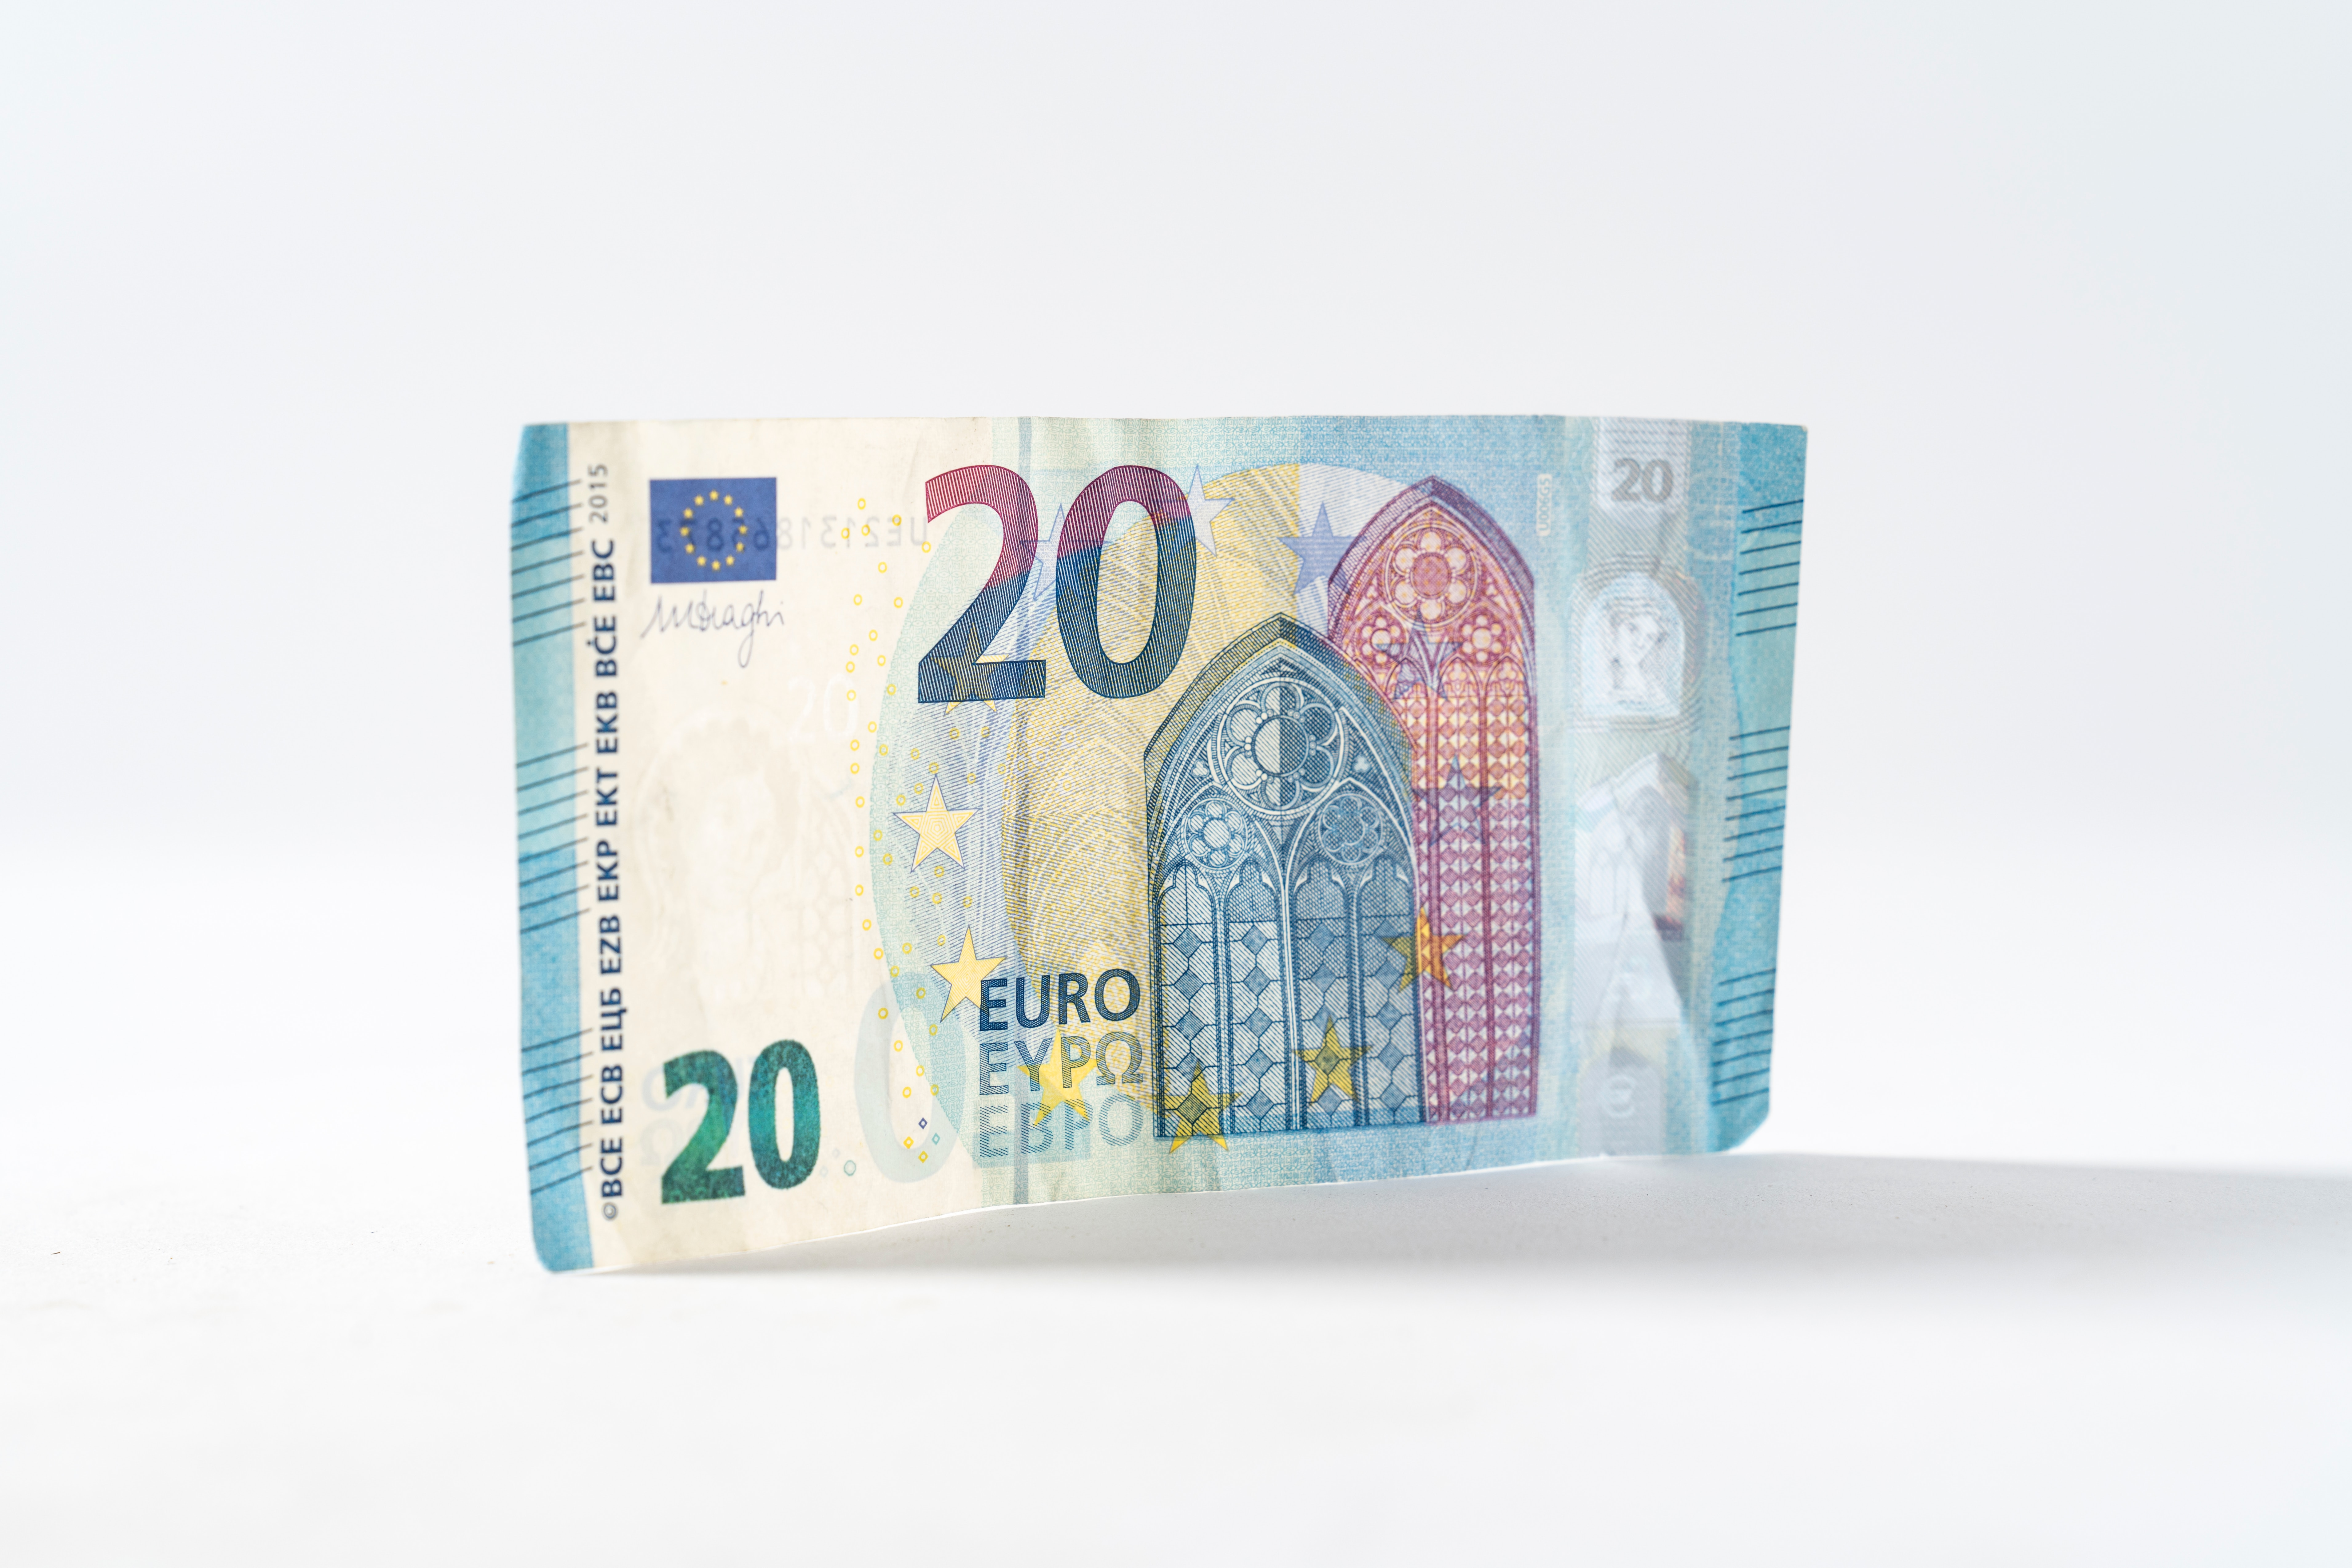 a 20 Euro note